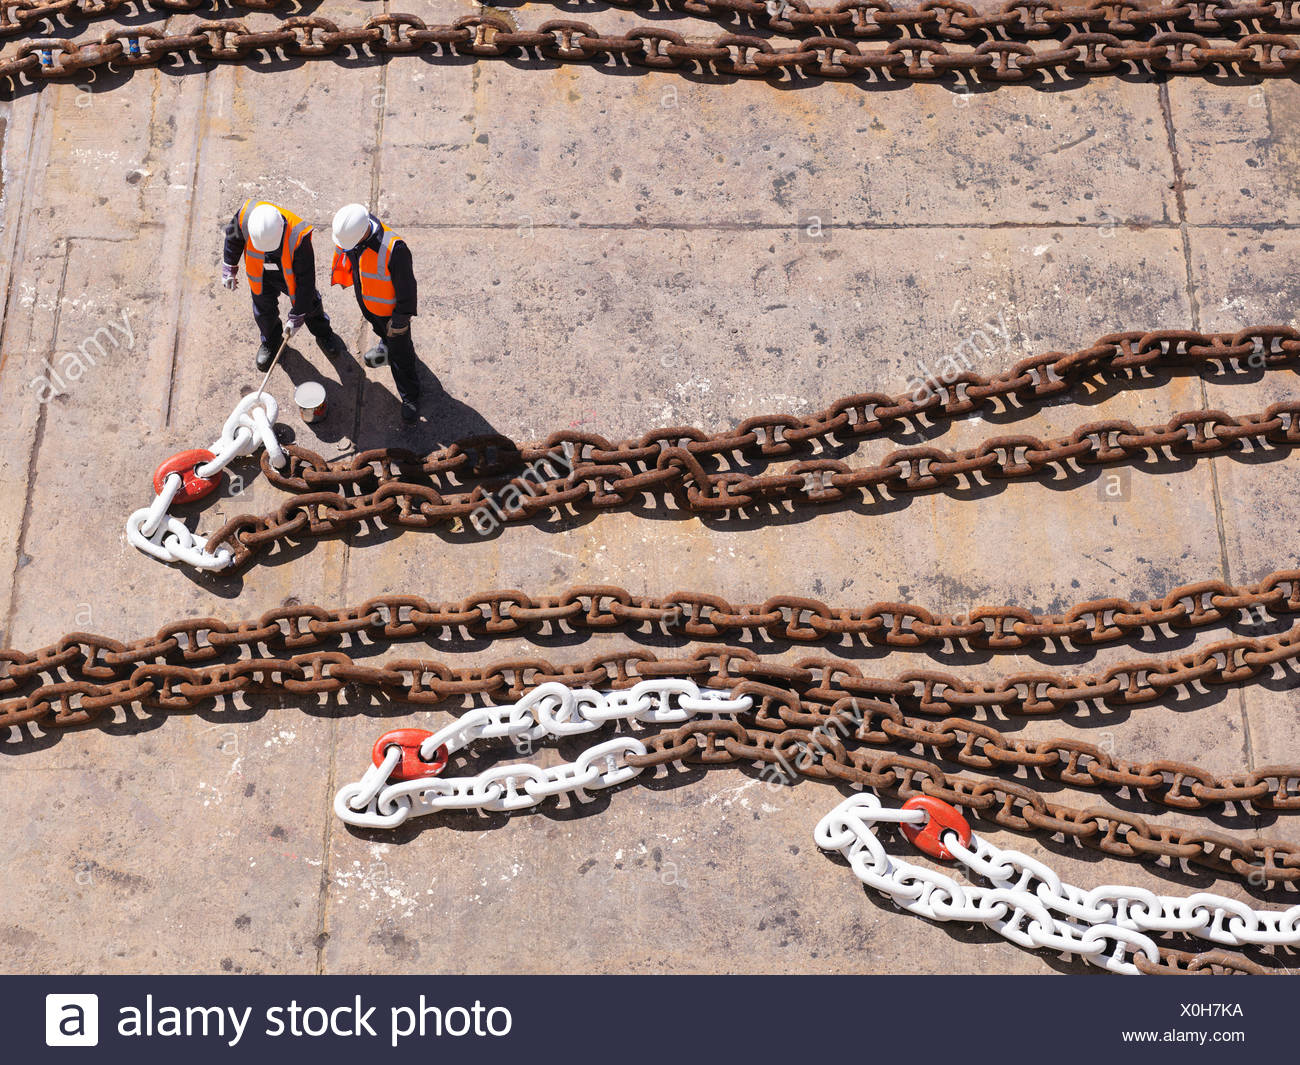 Aerial view of workers examining chain - Stock Image